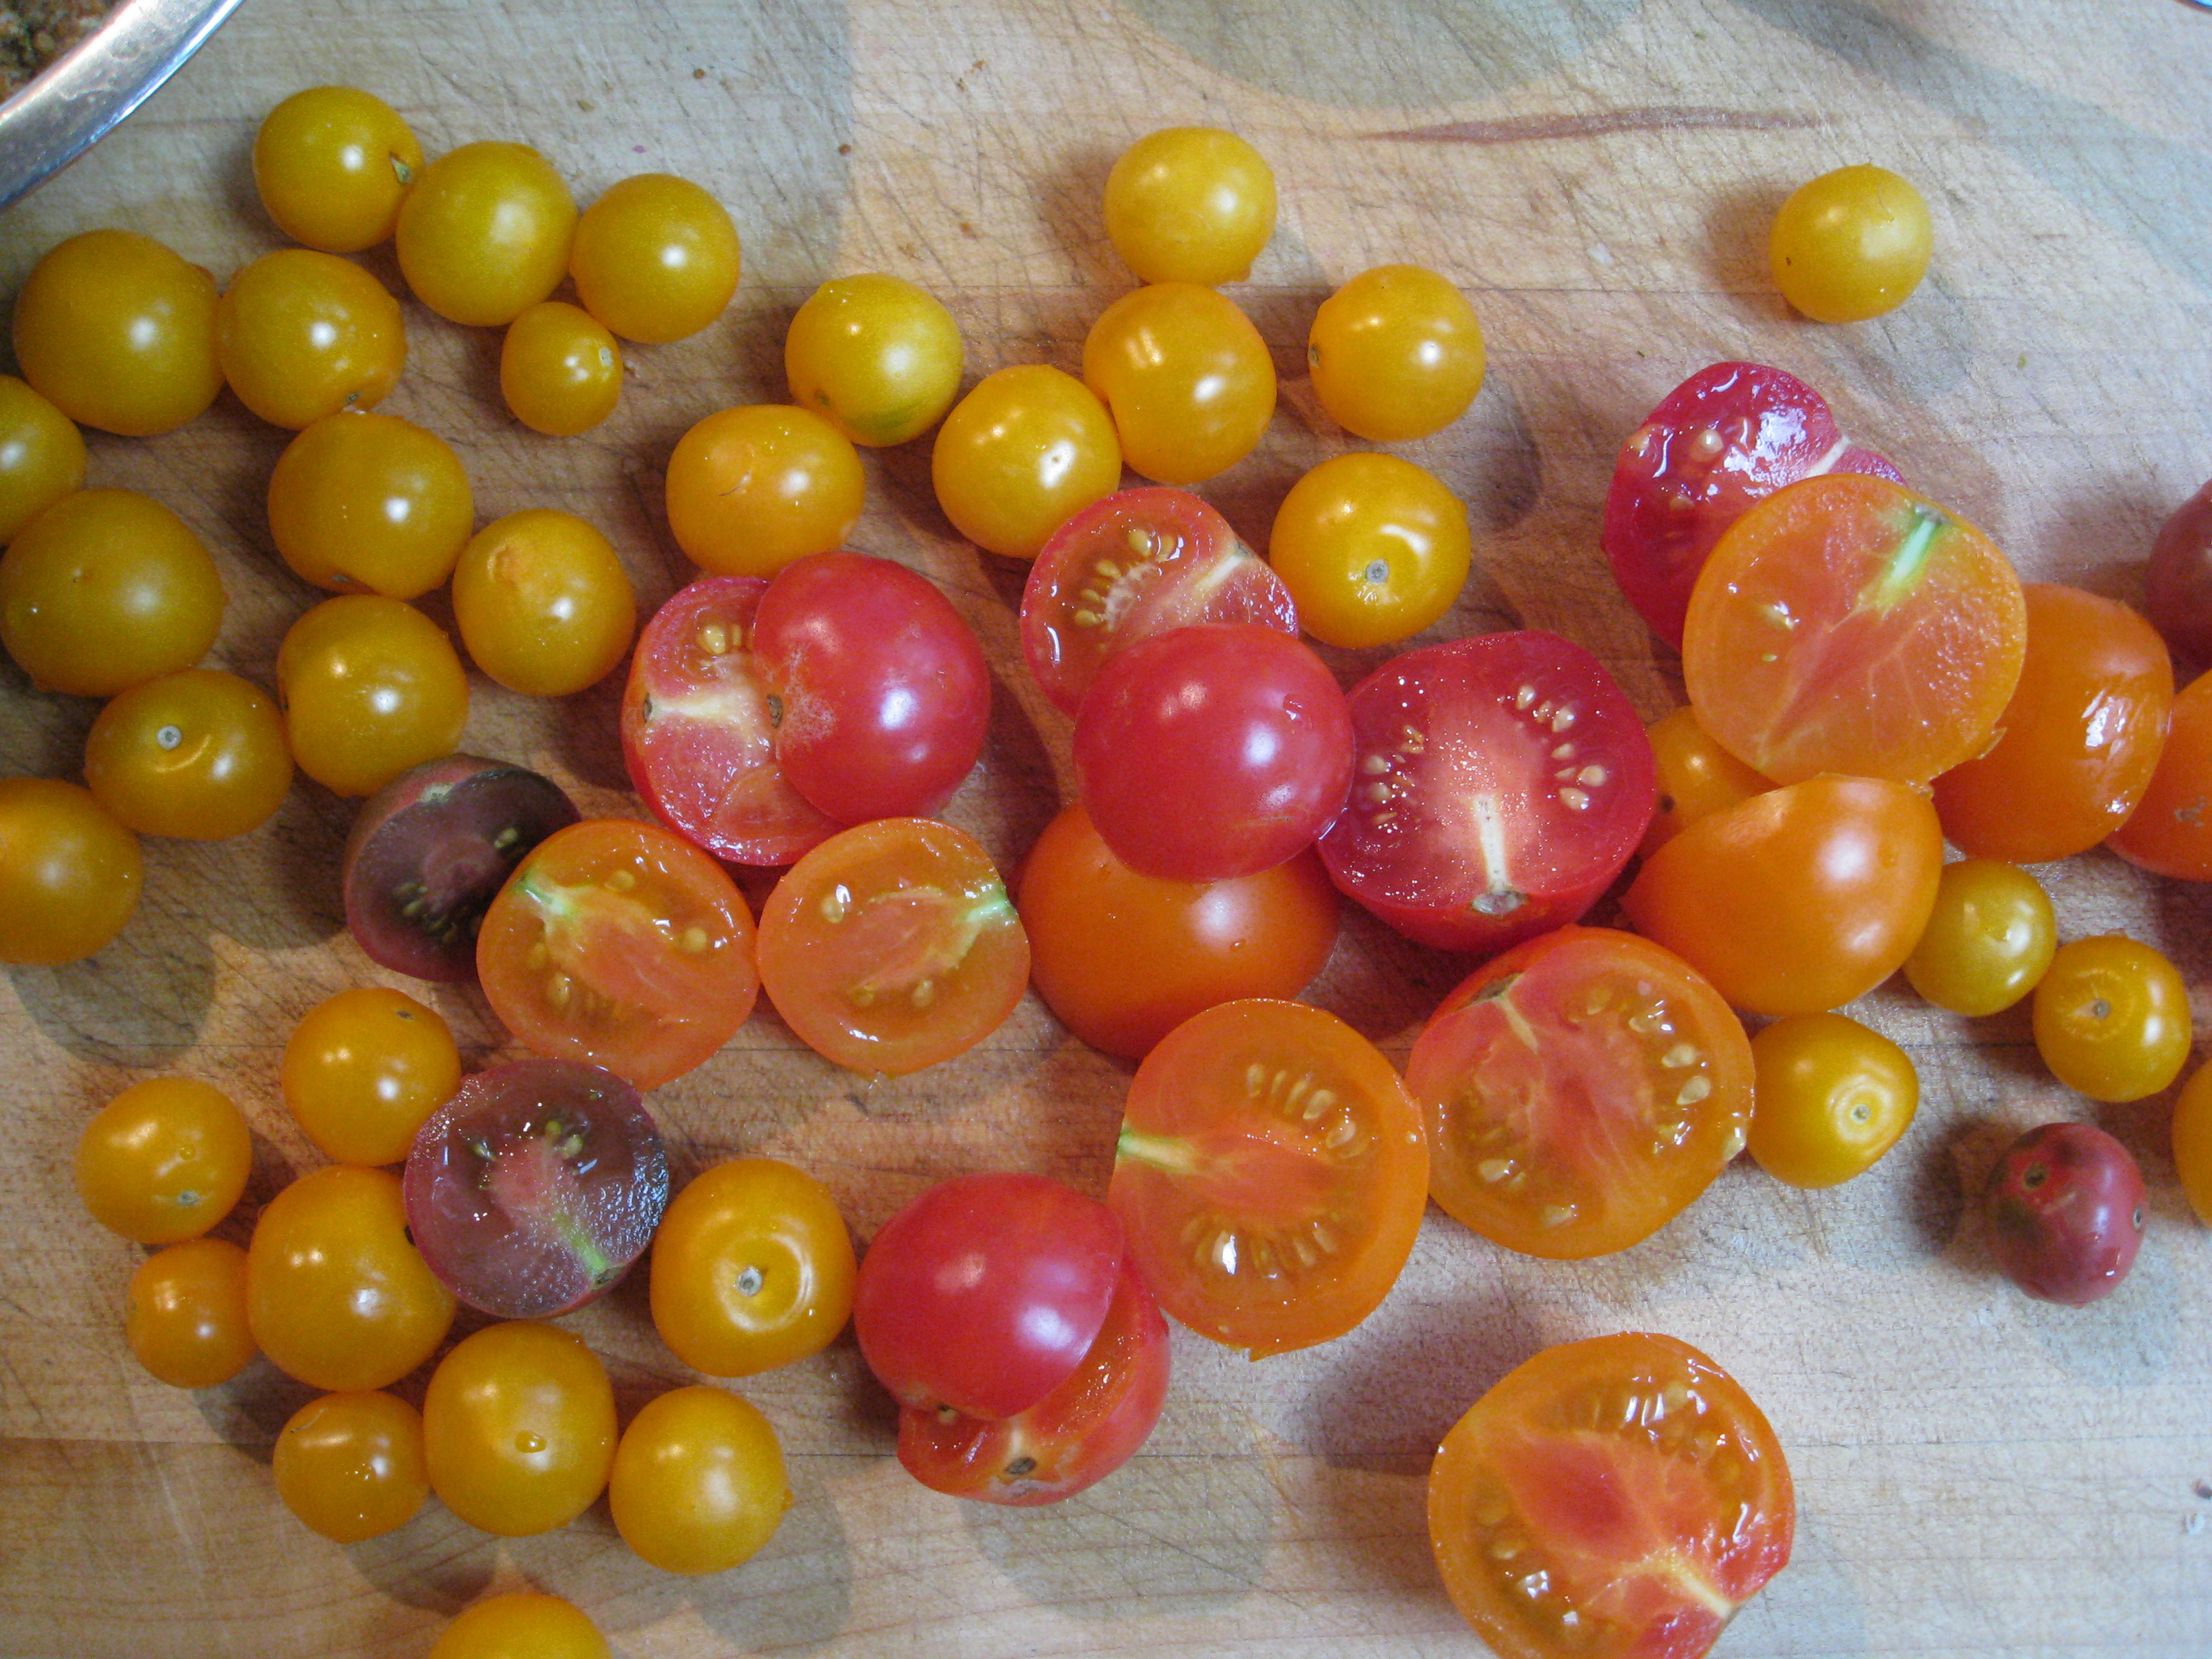 Gold Nugget cherry tomato (top yellow)